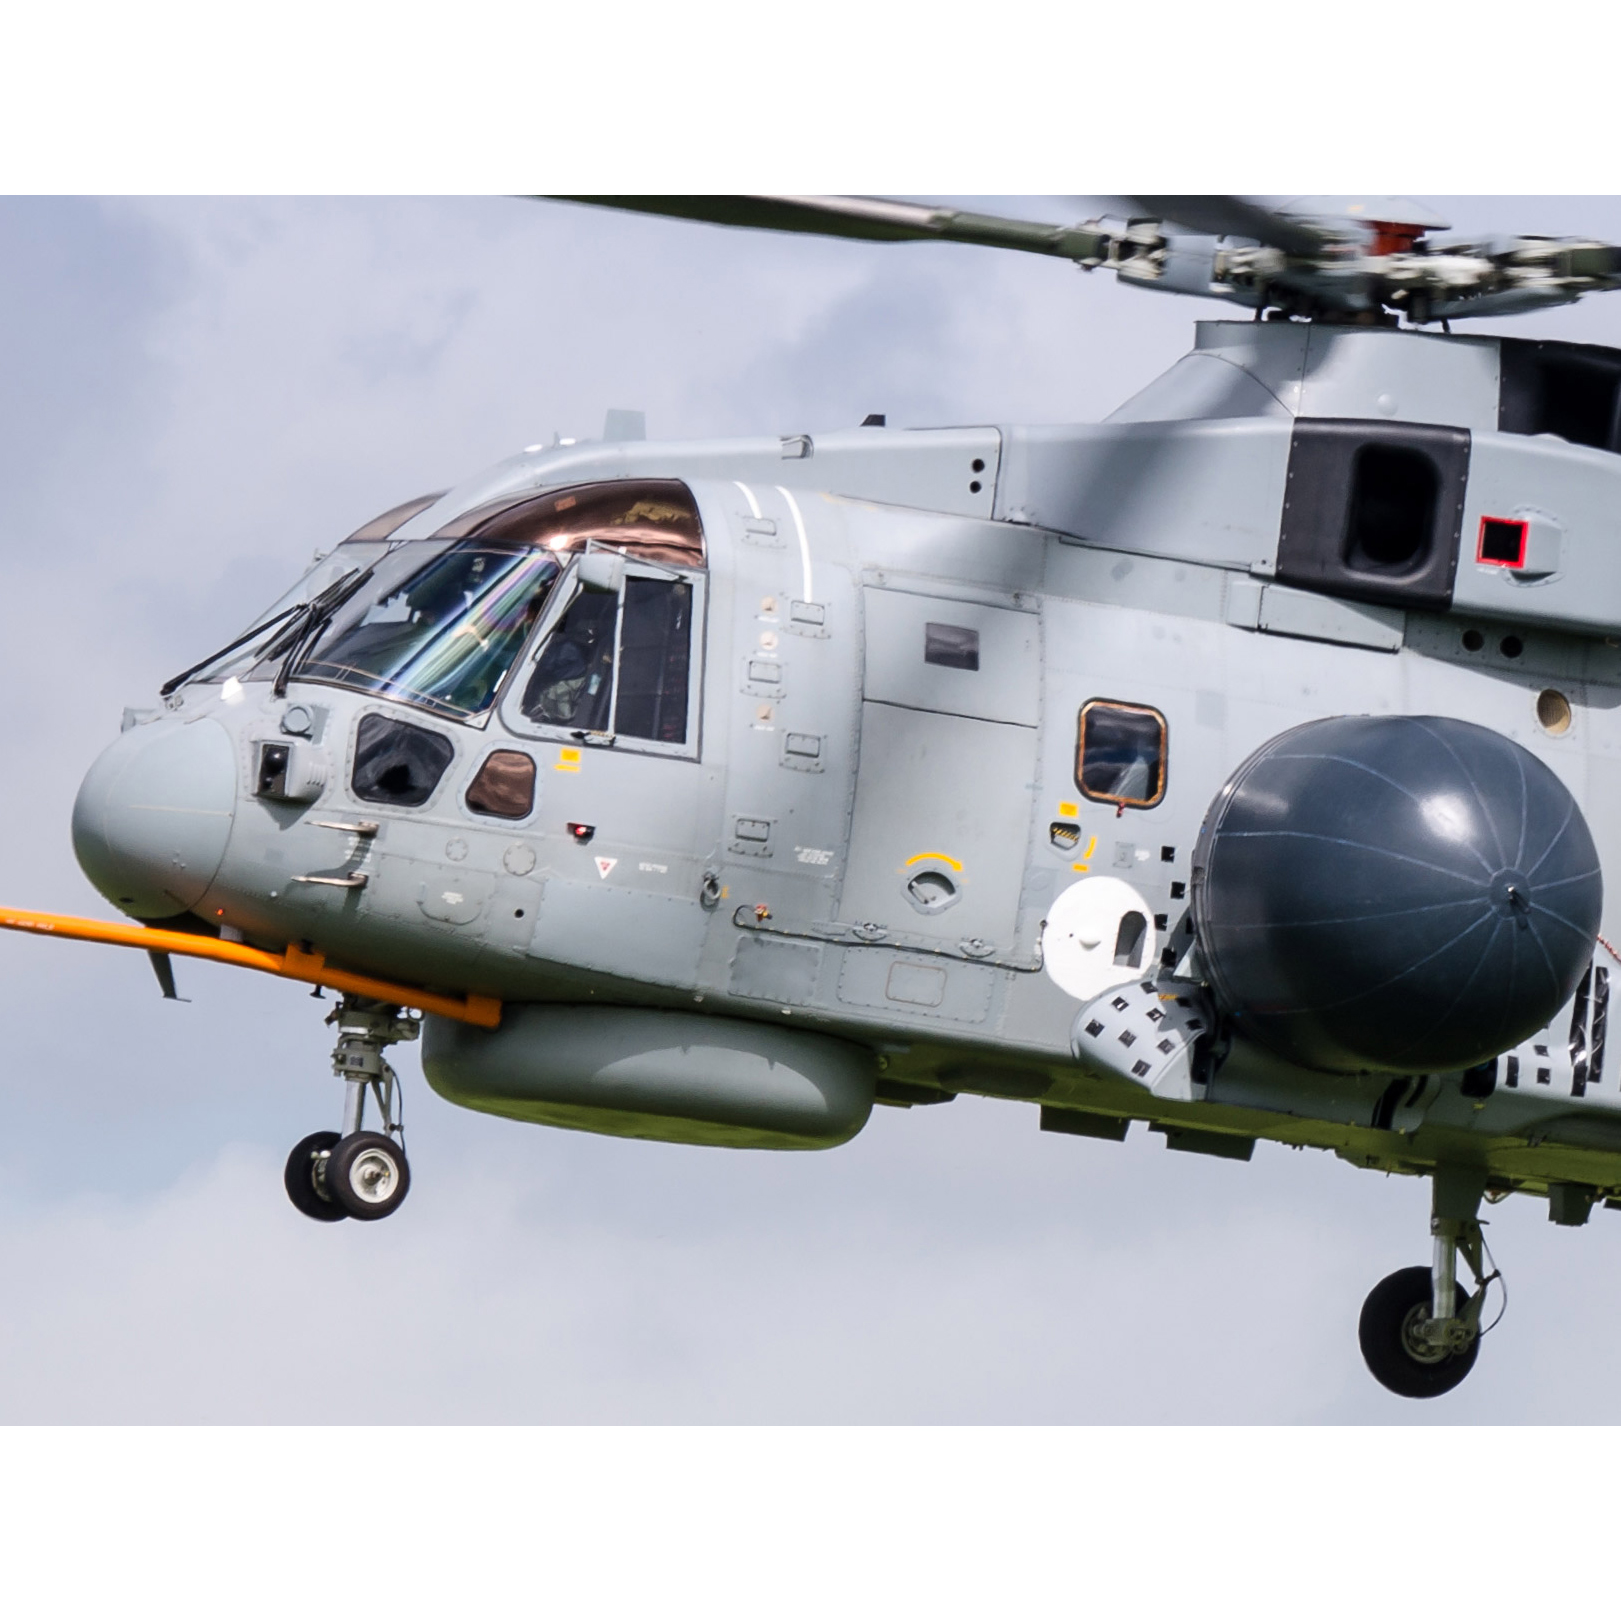 Casein Distemper used on Royal Navy Helicopters